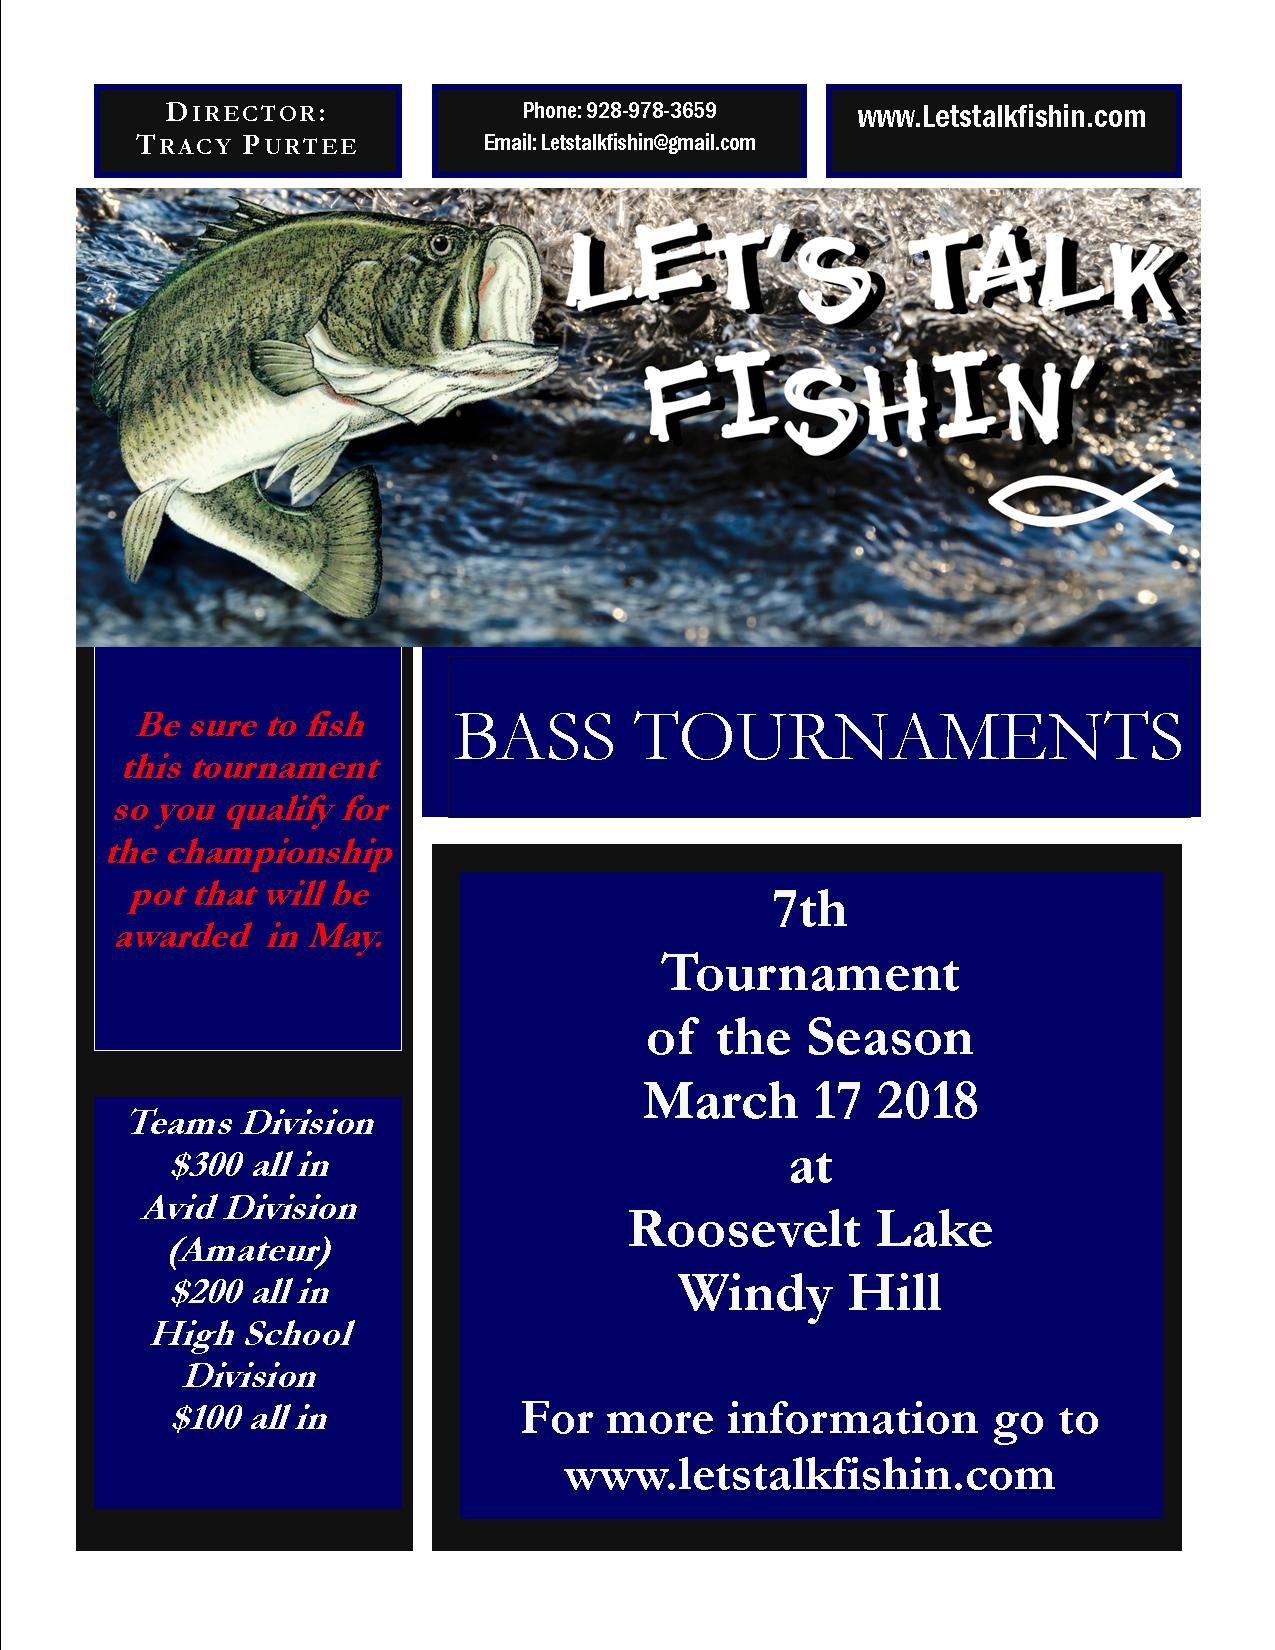 Click image for larger version  Name:7th Tournament.jpg Views:1692 Size:283.6 KB ID:96826